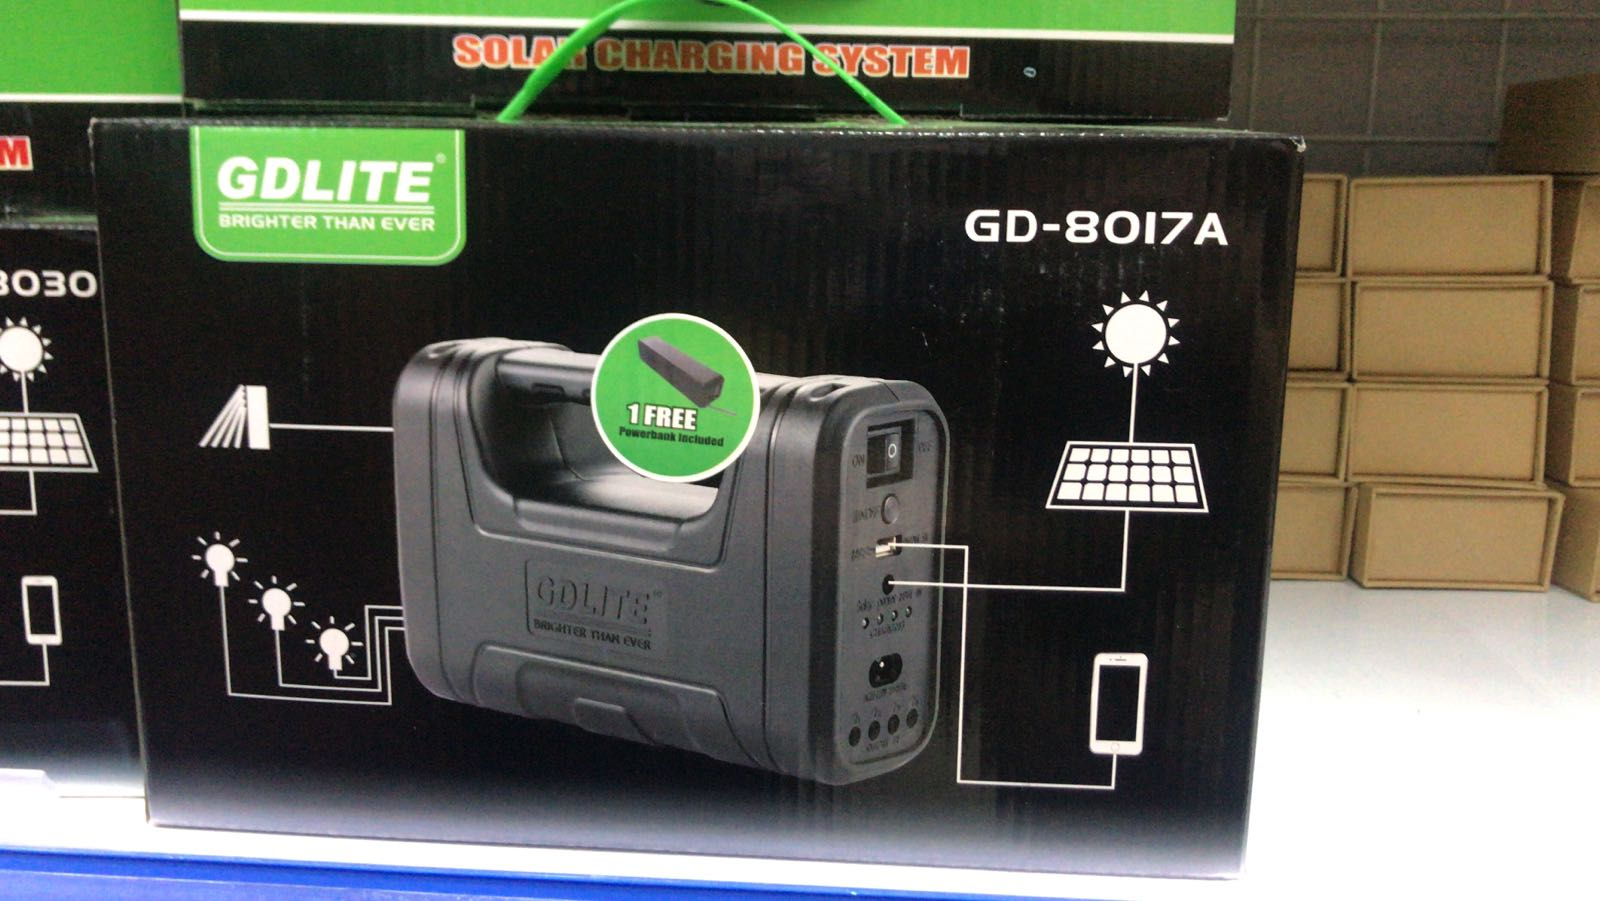 Solar Charging Systems /Rechargeable Digital Light System